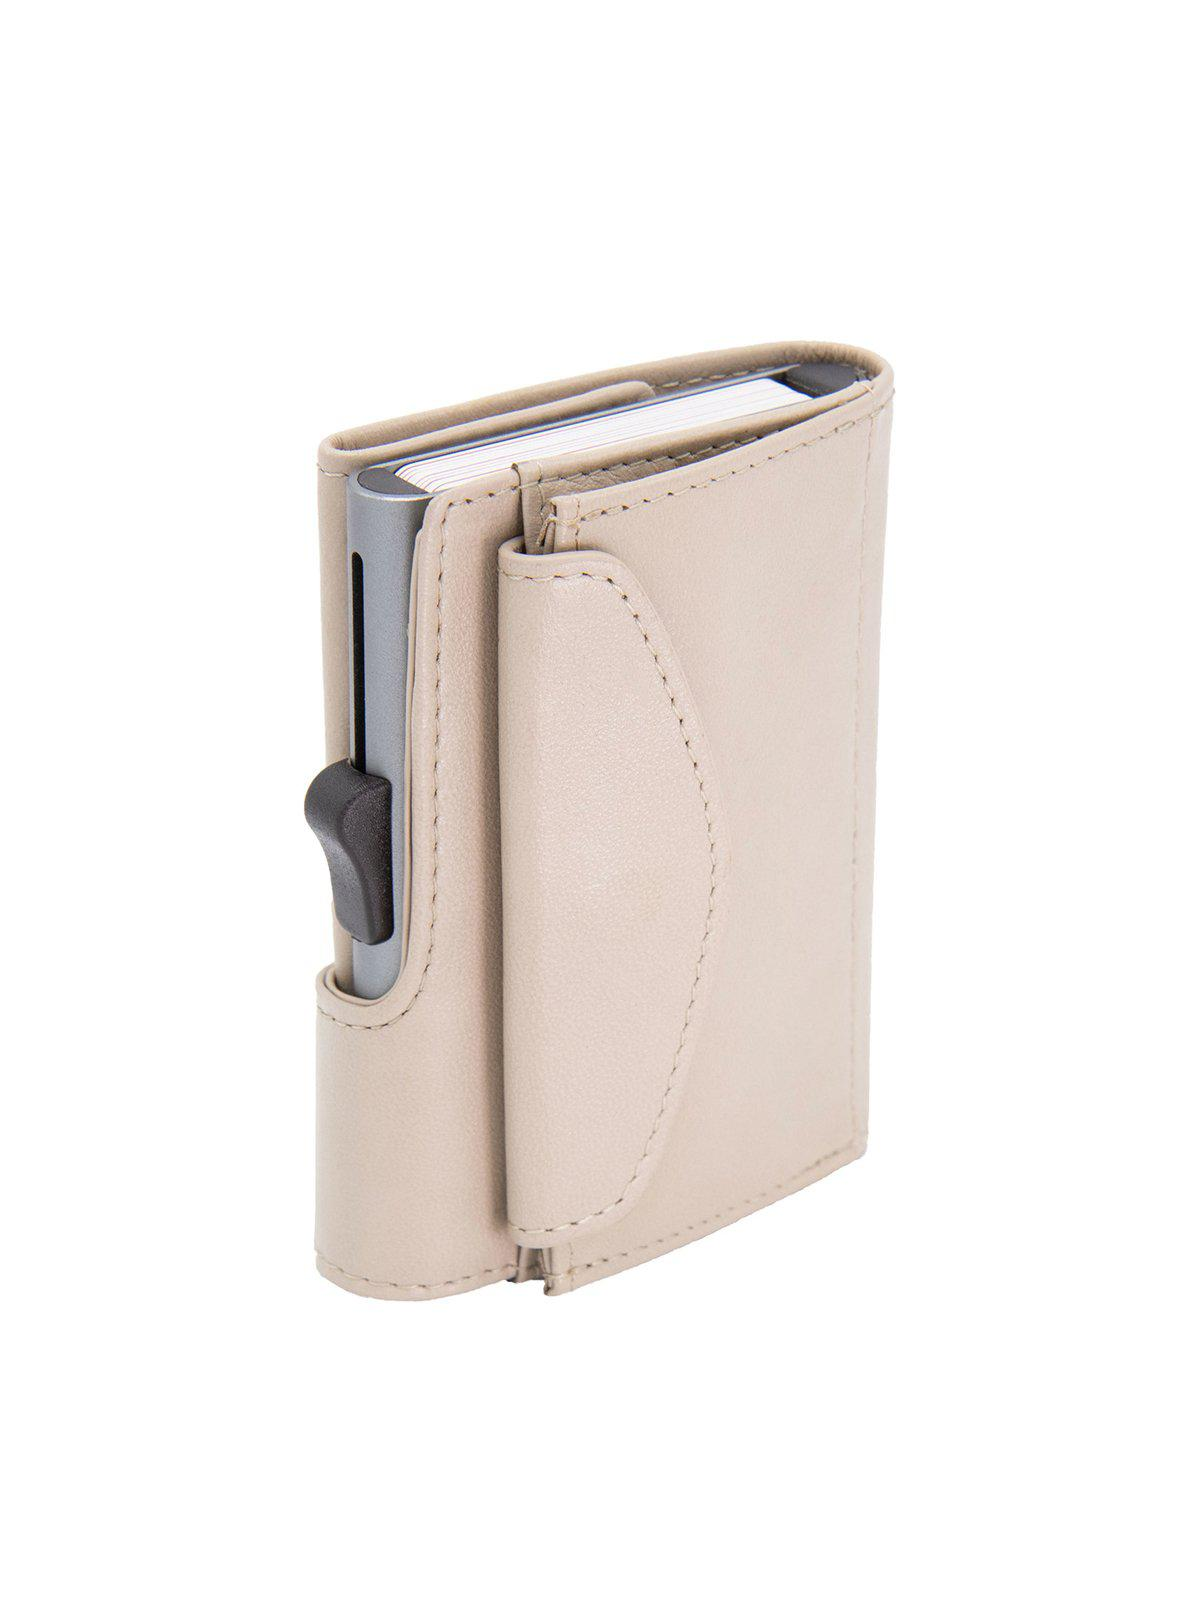 C-Secure XL Italian Leather Wallet with Coin Pouch RFID Chic Grey - MORE by Morello Indonesia